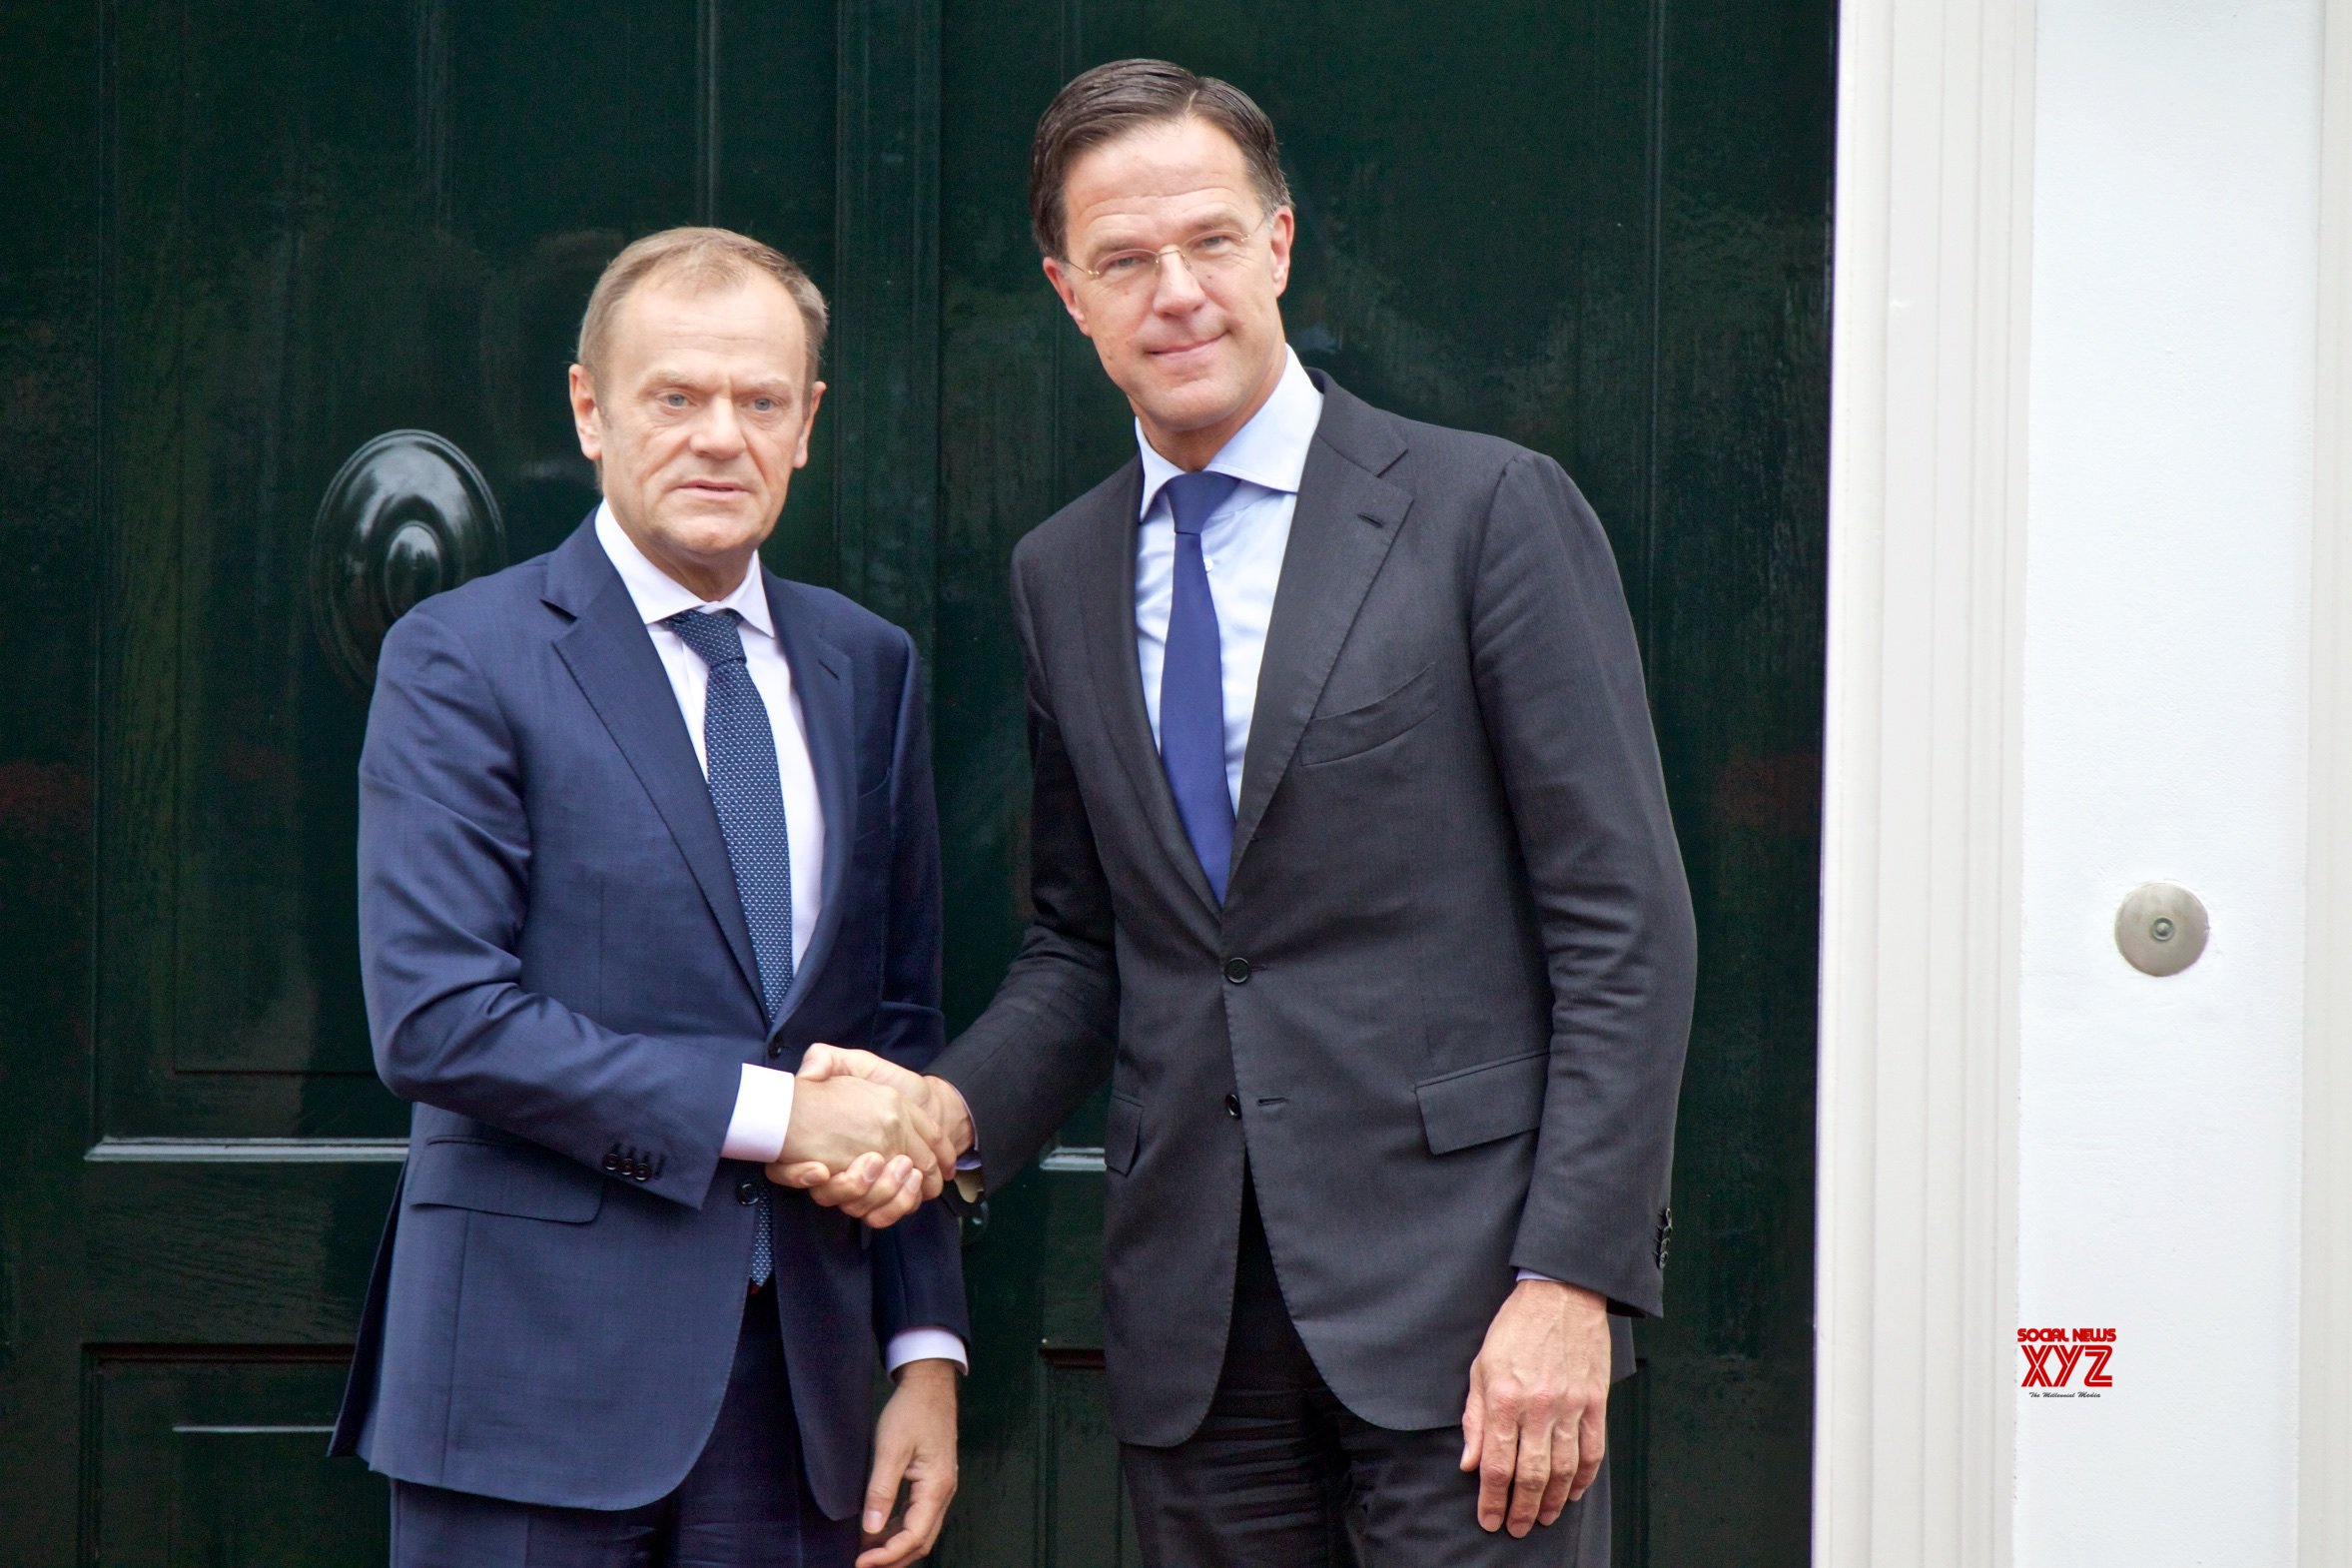 THE NETHERLANDS - THE HAGUE - PM - EU - MEETING #Gallery